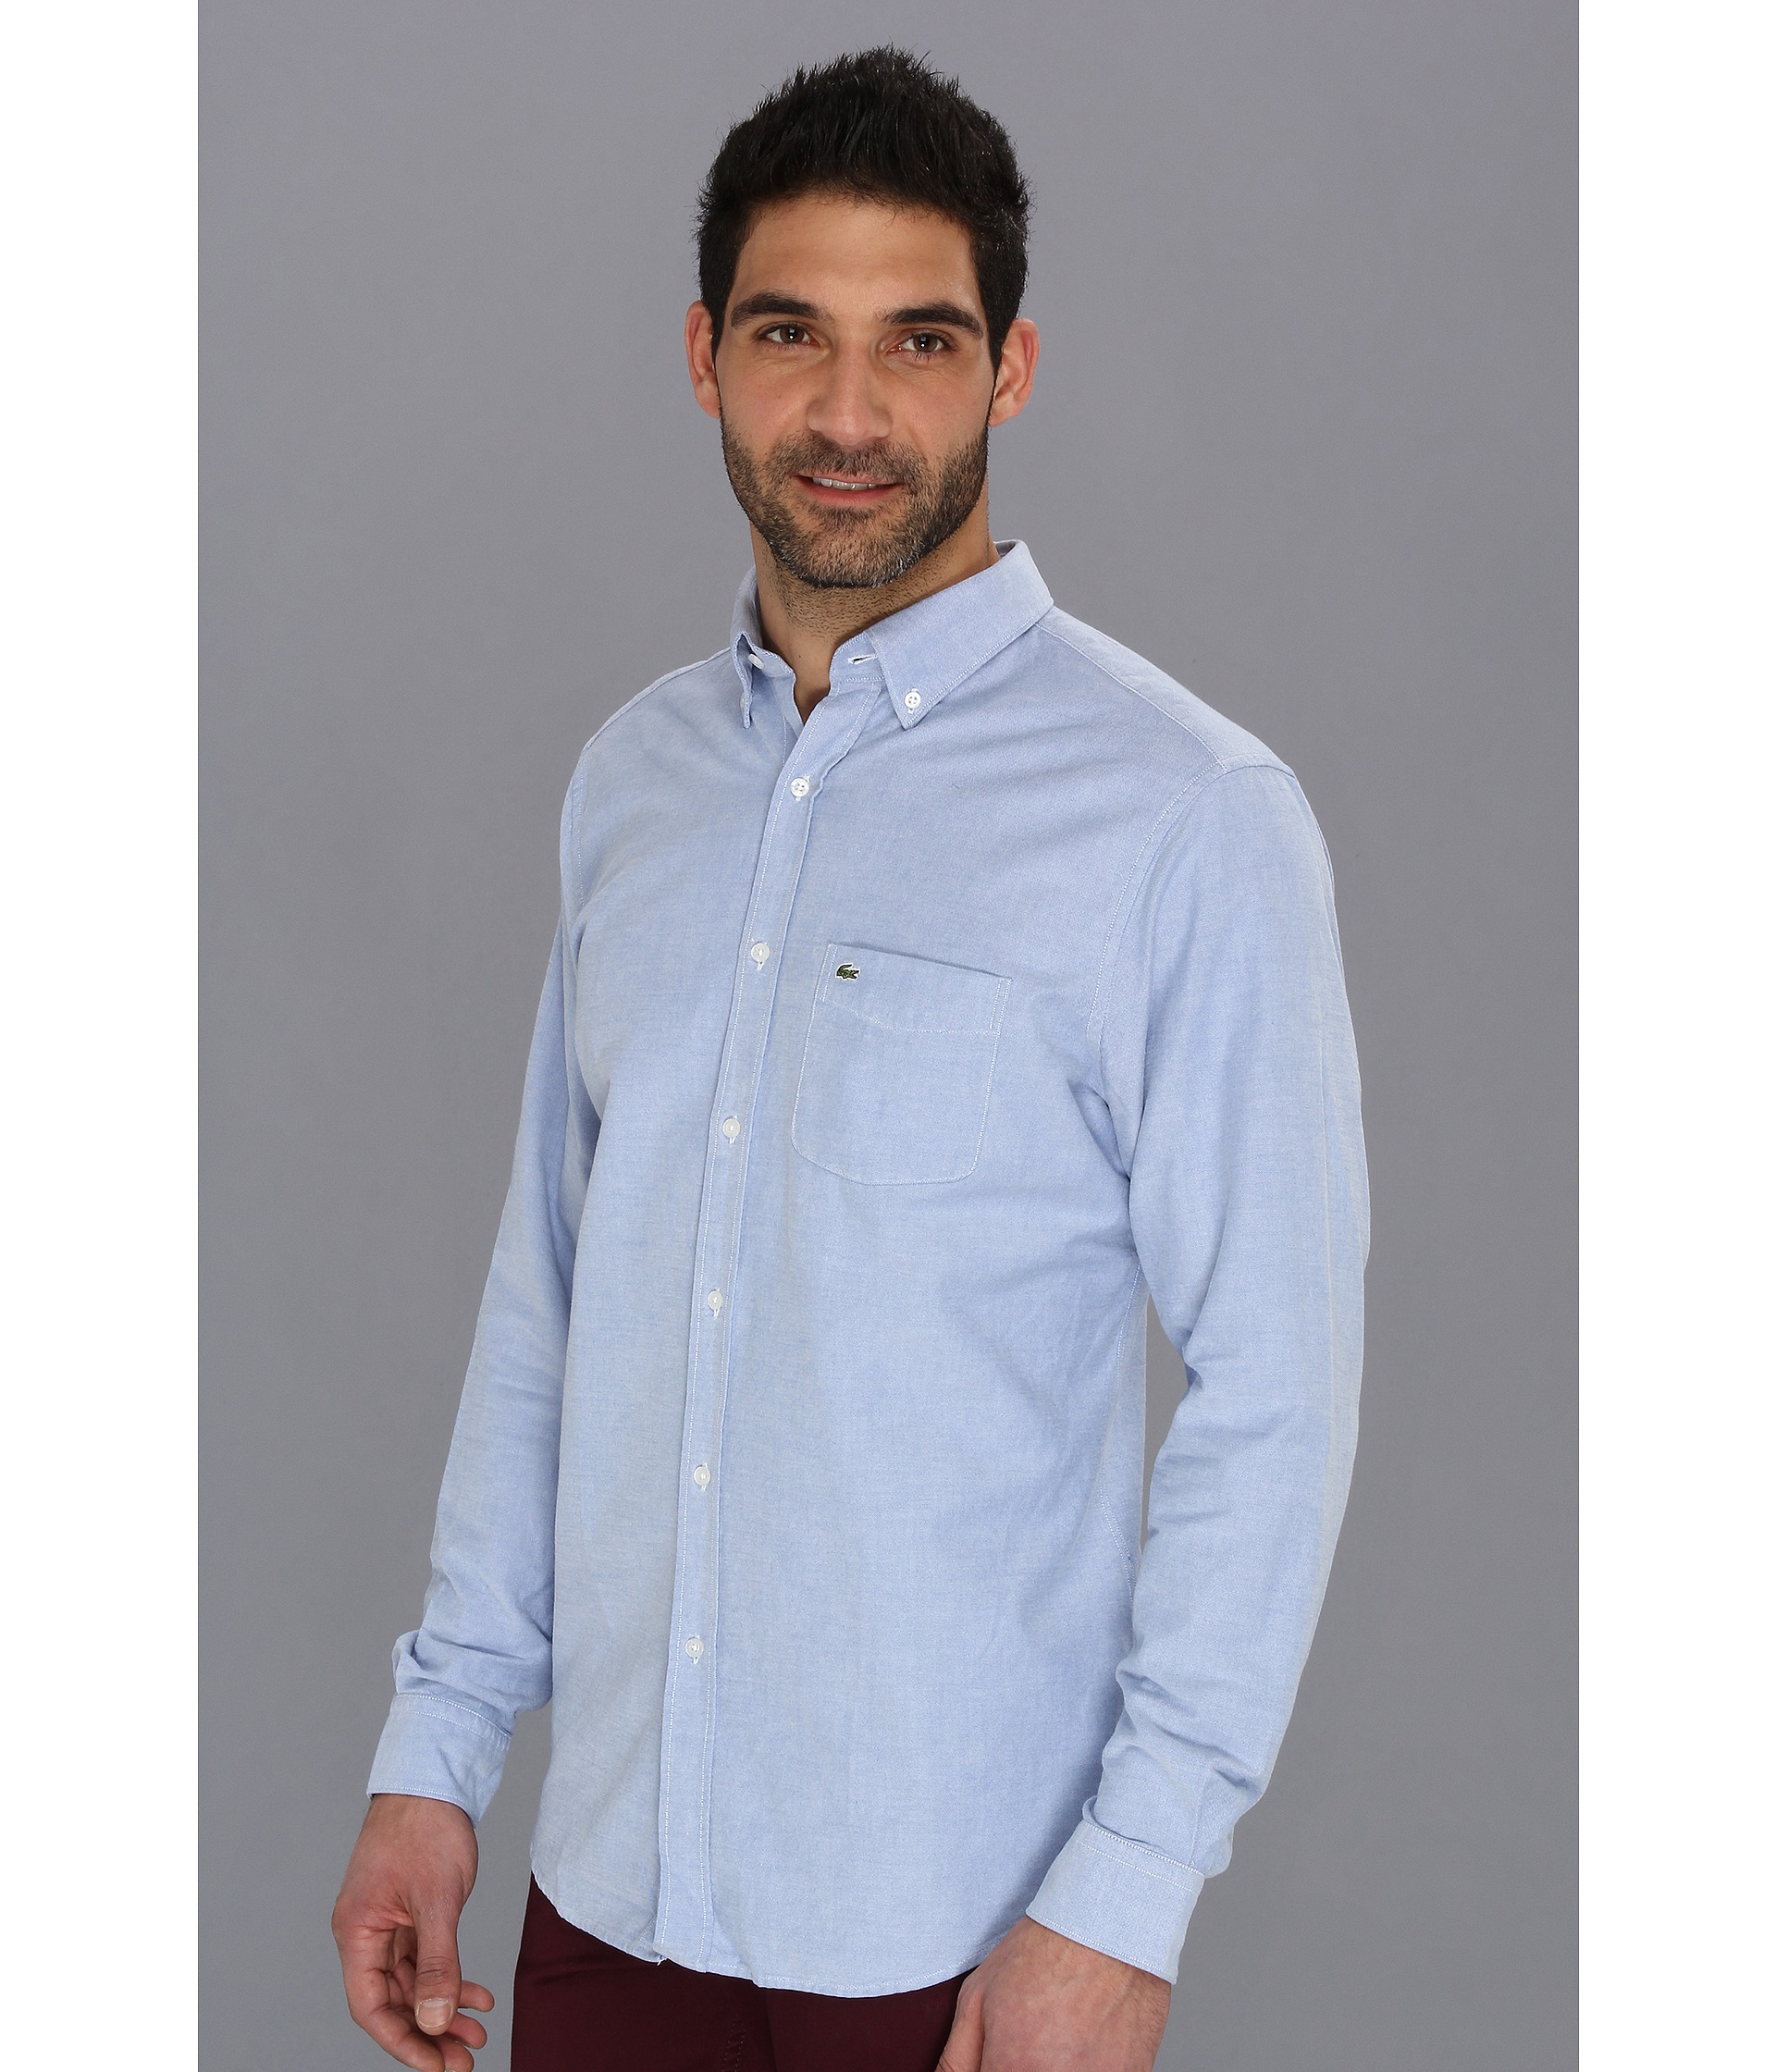 789aa228 Lacoste Blue Long Sleeve Button Down Oxford Woven Shirt for men